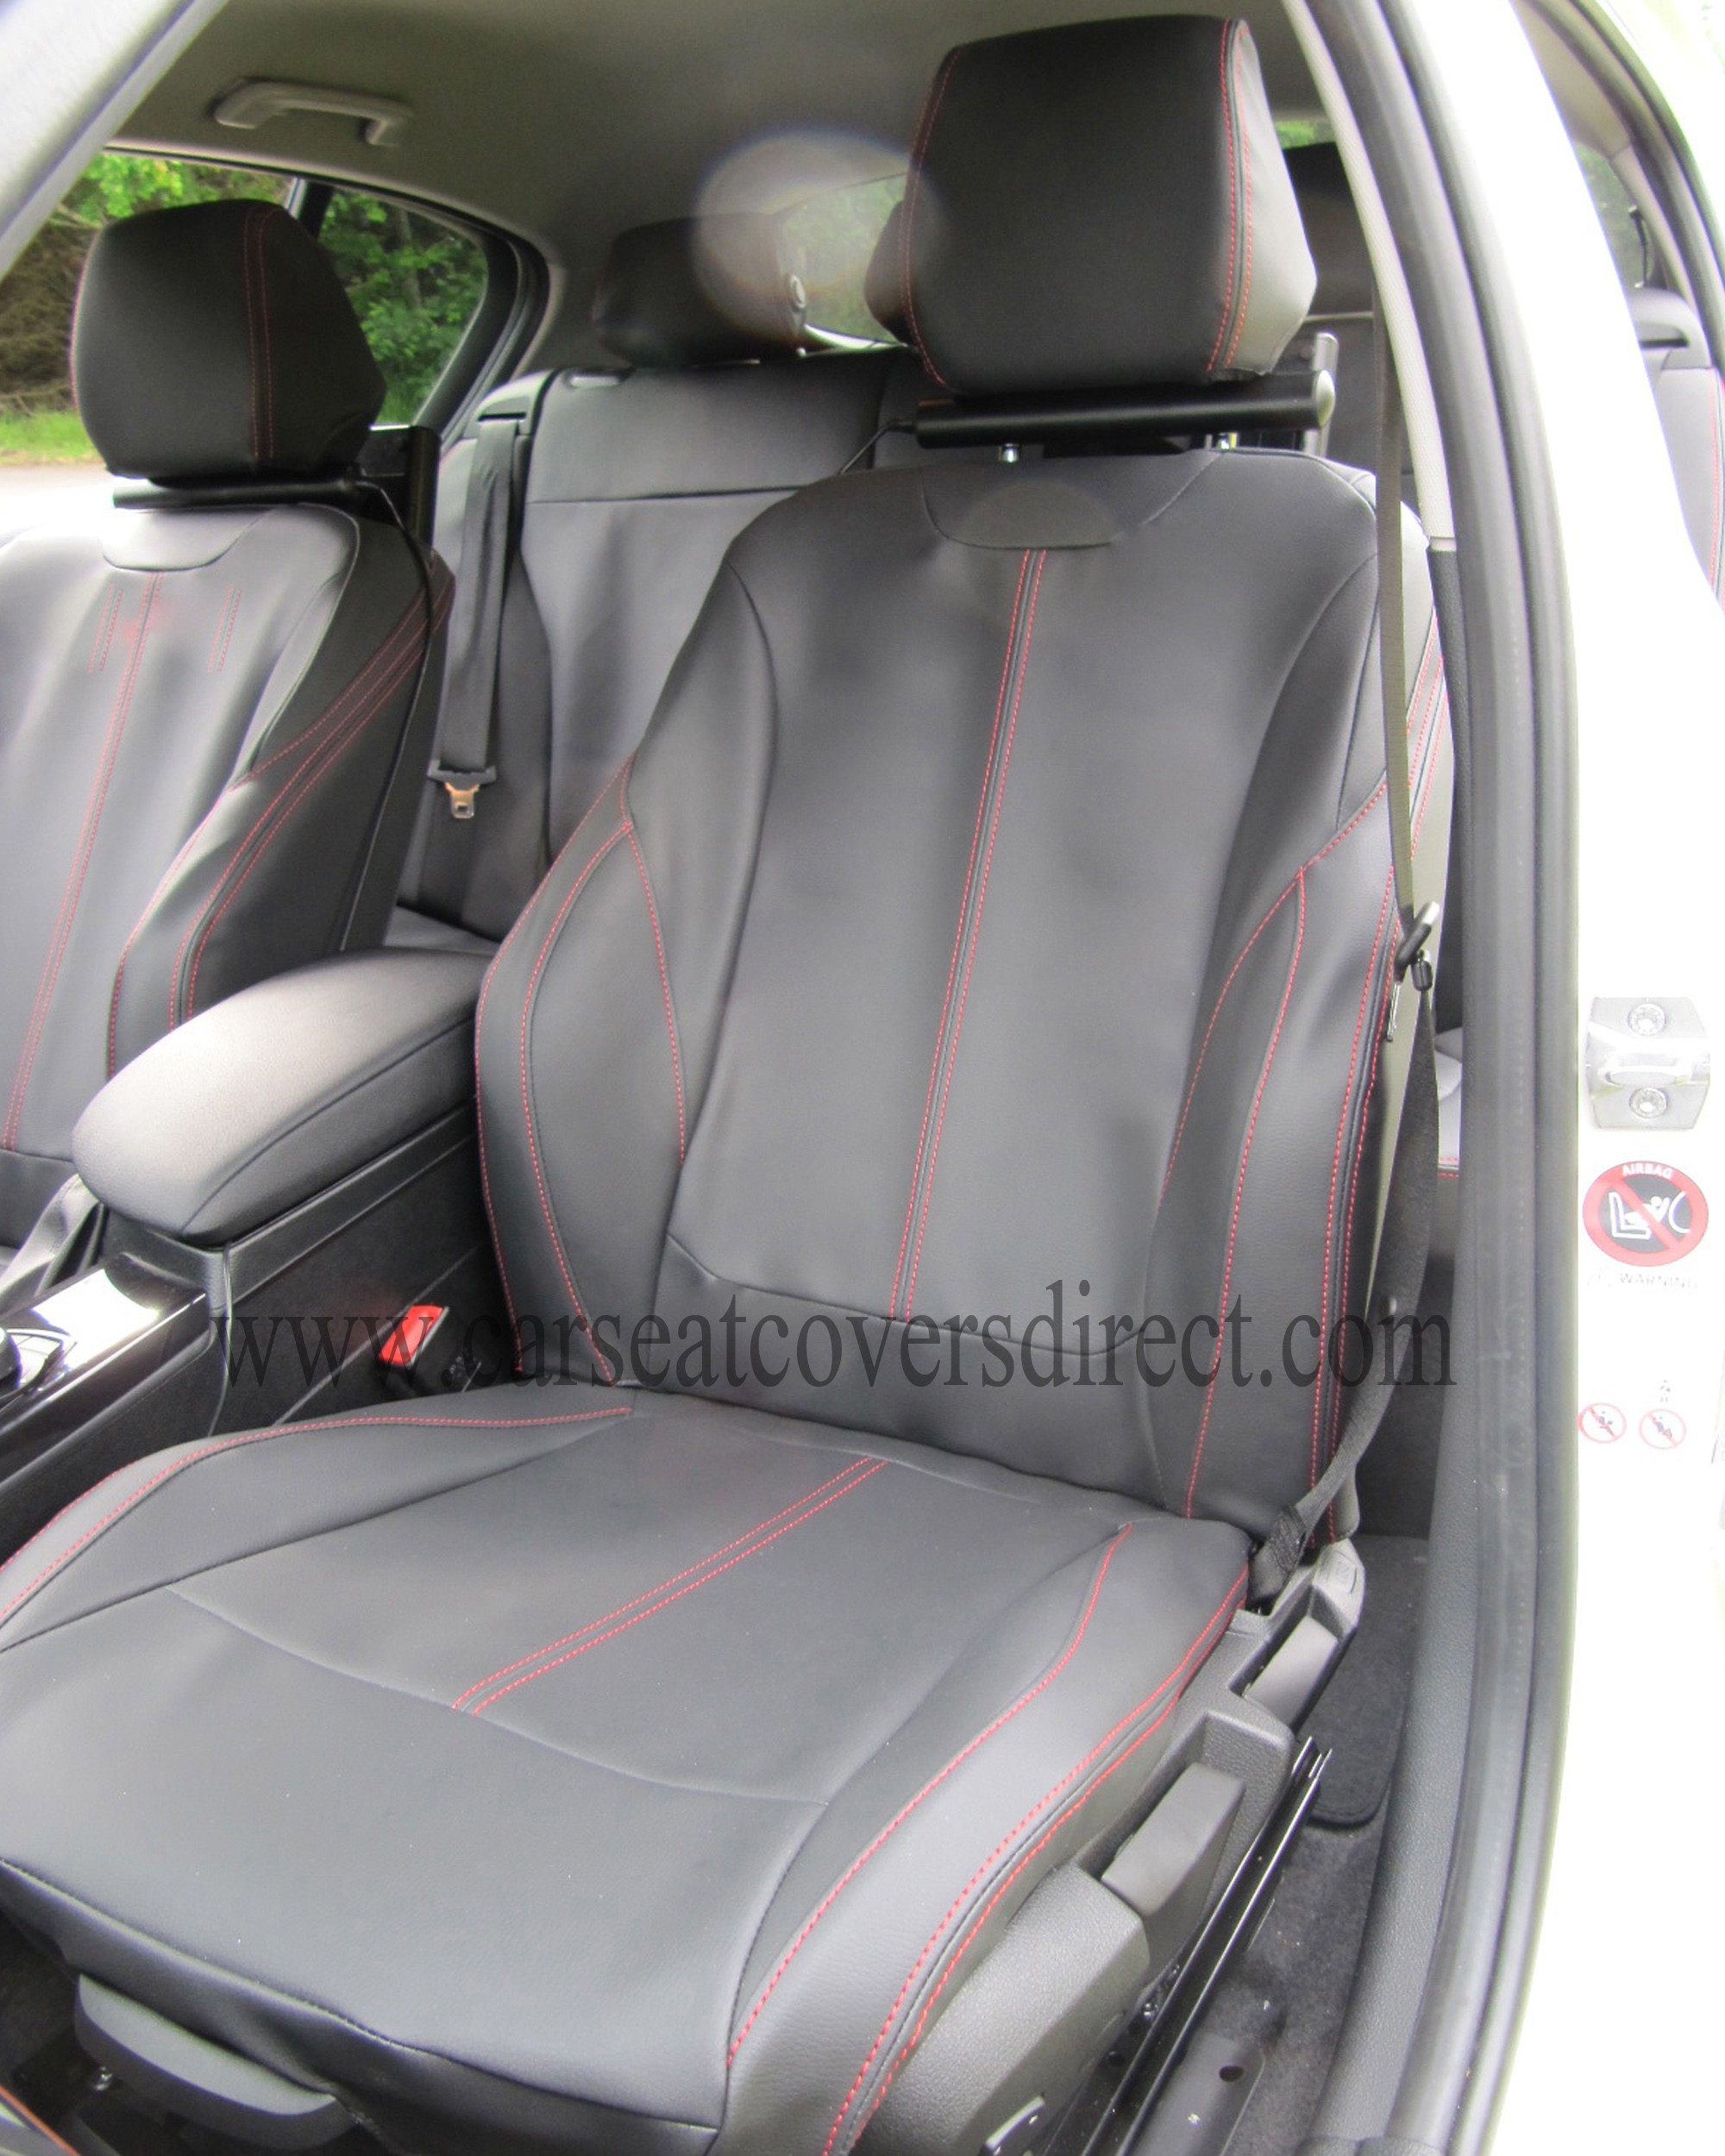 search results for 39 bmw 39 car seat covers direct tailored to your choice. Black Bedroom Furniture Sets. Home Design Ideas